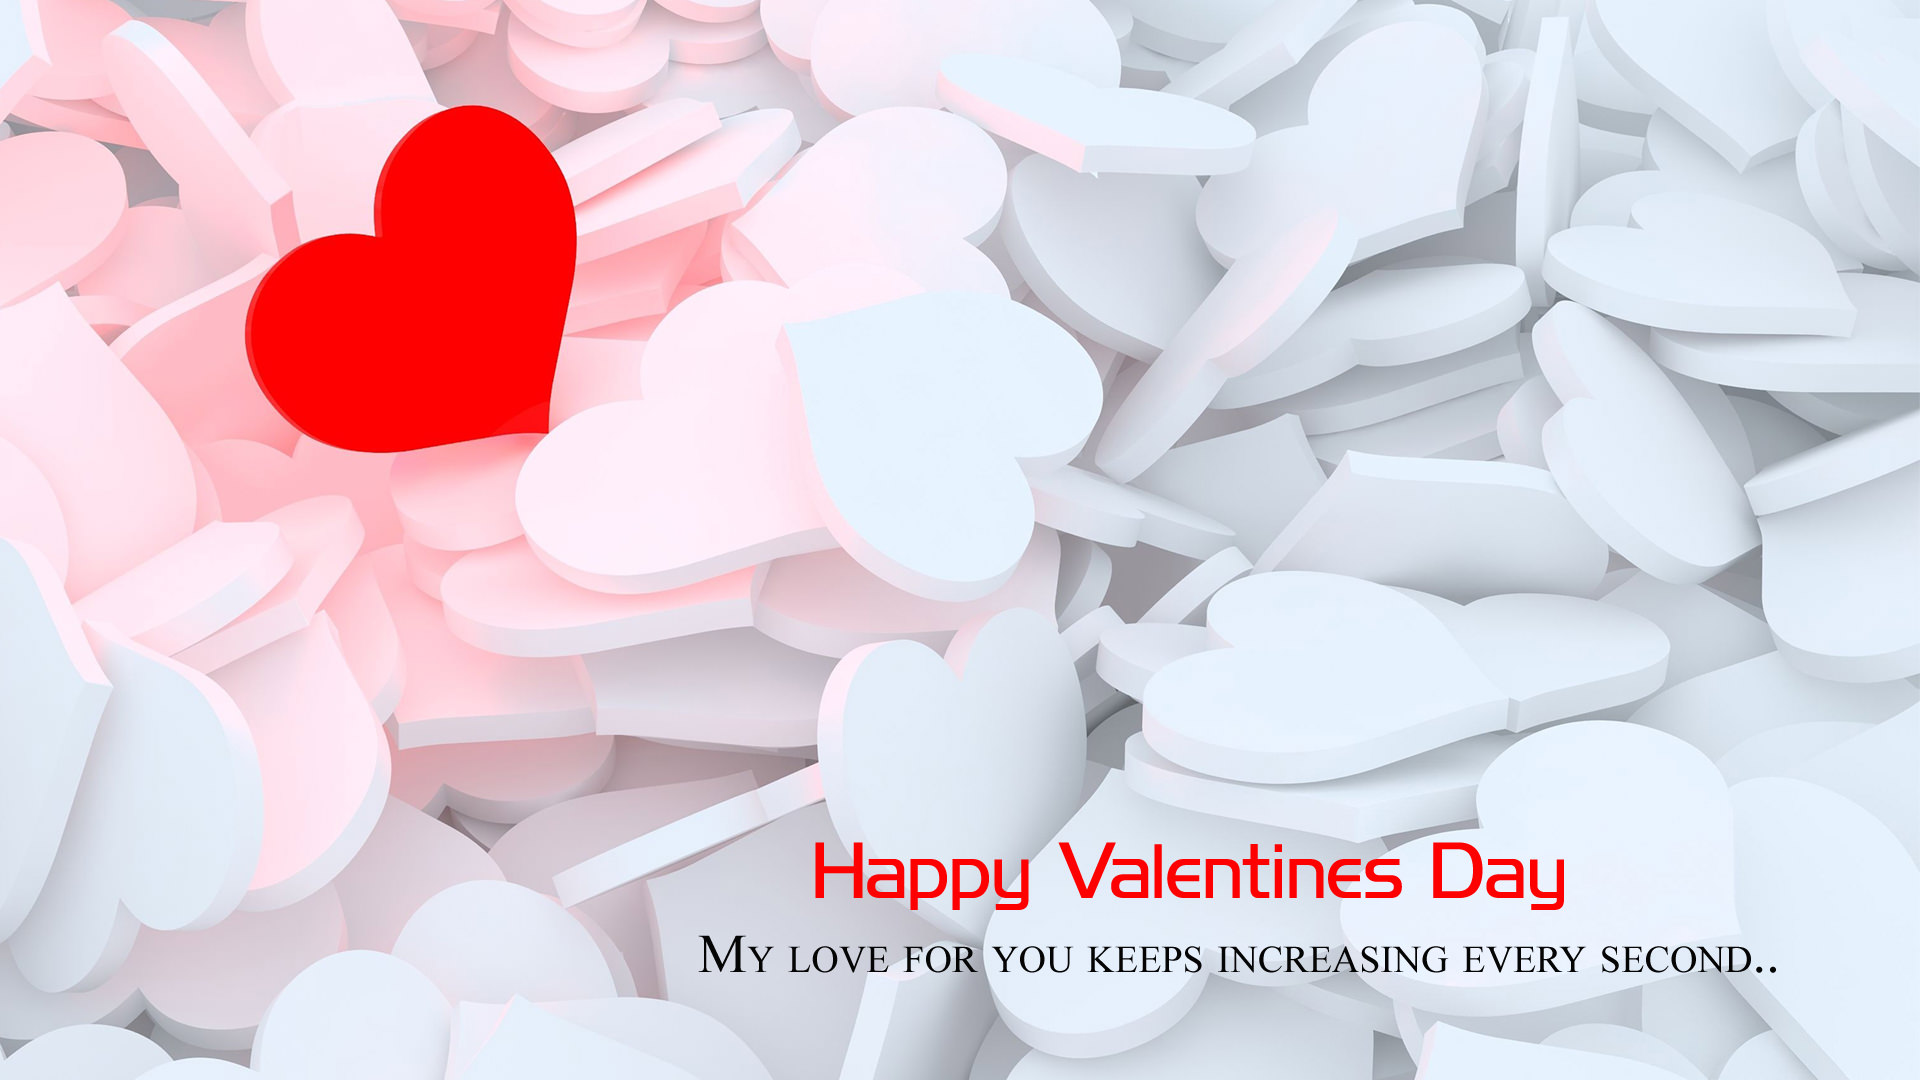 Special Valentine Day Wall Pics for BF GF